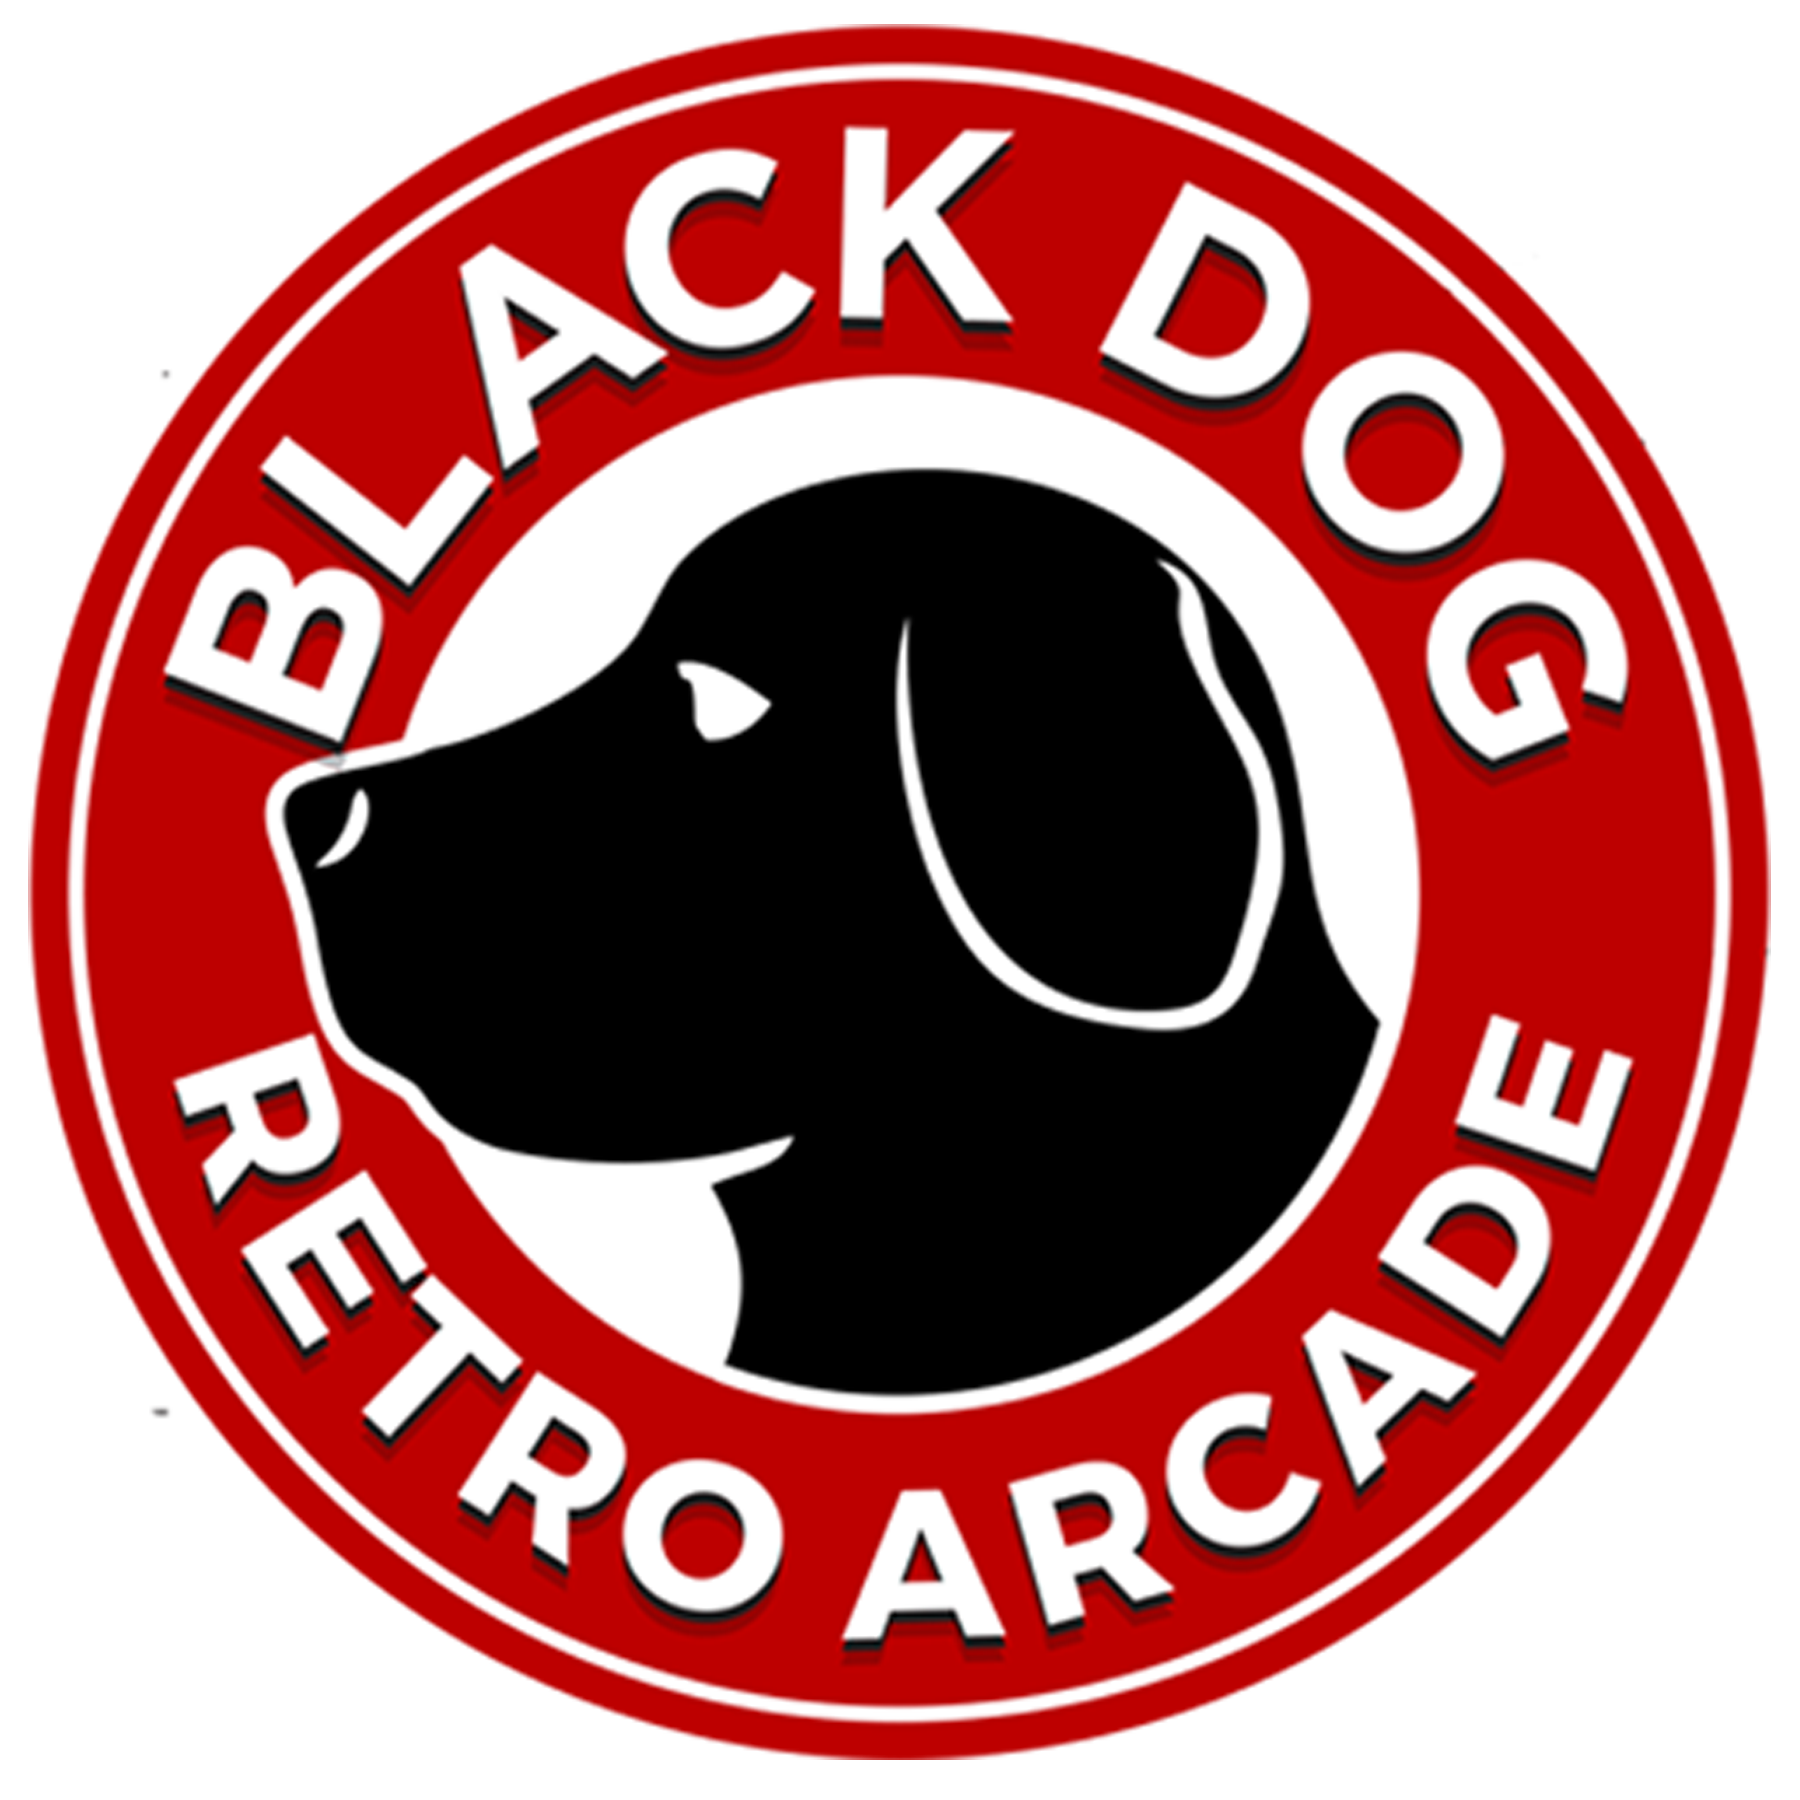 Black Dog Retro Arcade